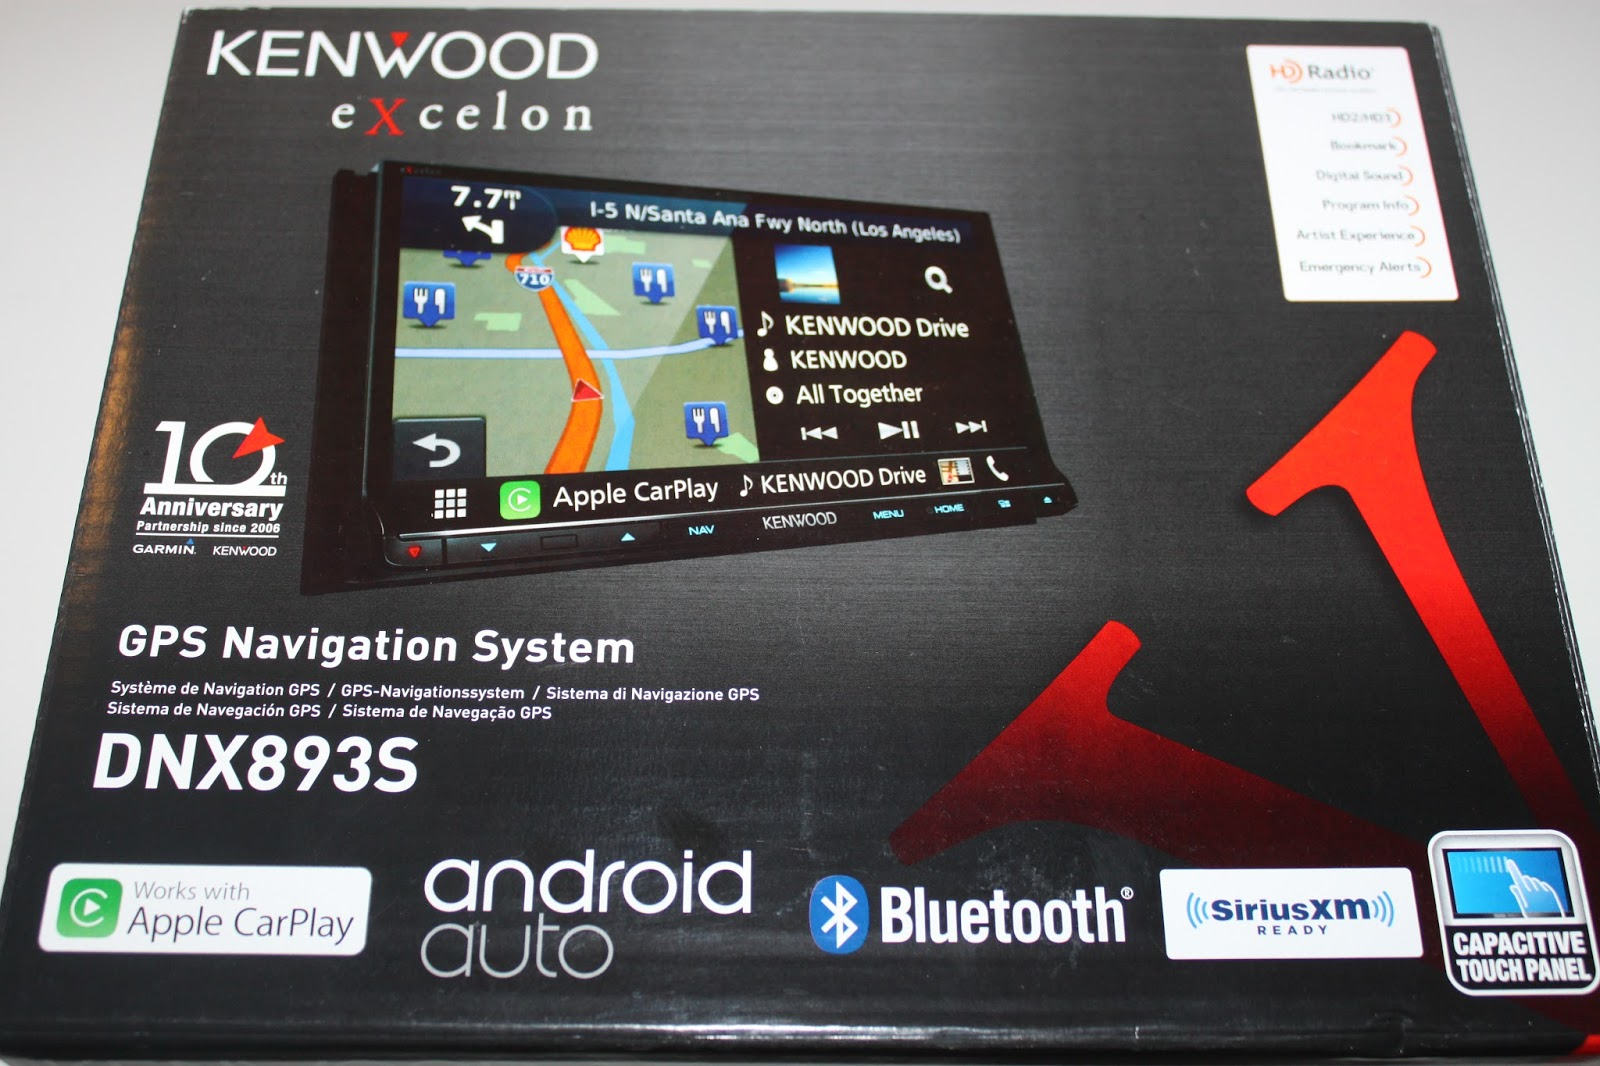 Unbox Kenwood Excelons Postmetro Excelon Kfc Xw10 Wiring Diagram If You Want The Best Thats Available Its Dnx 893s Gps